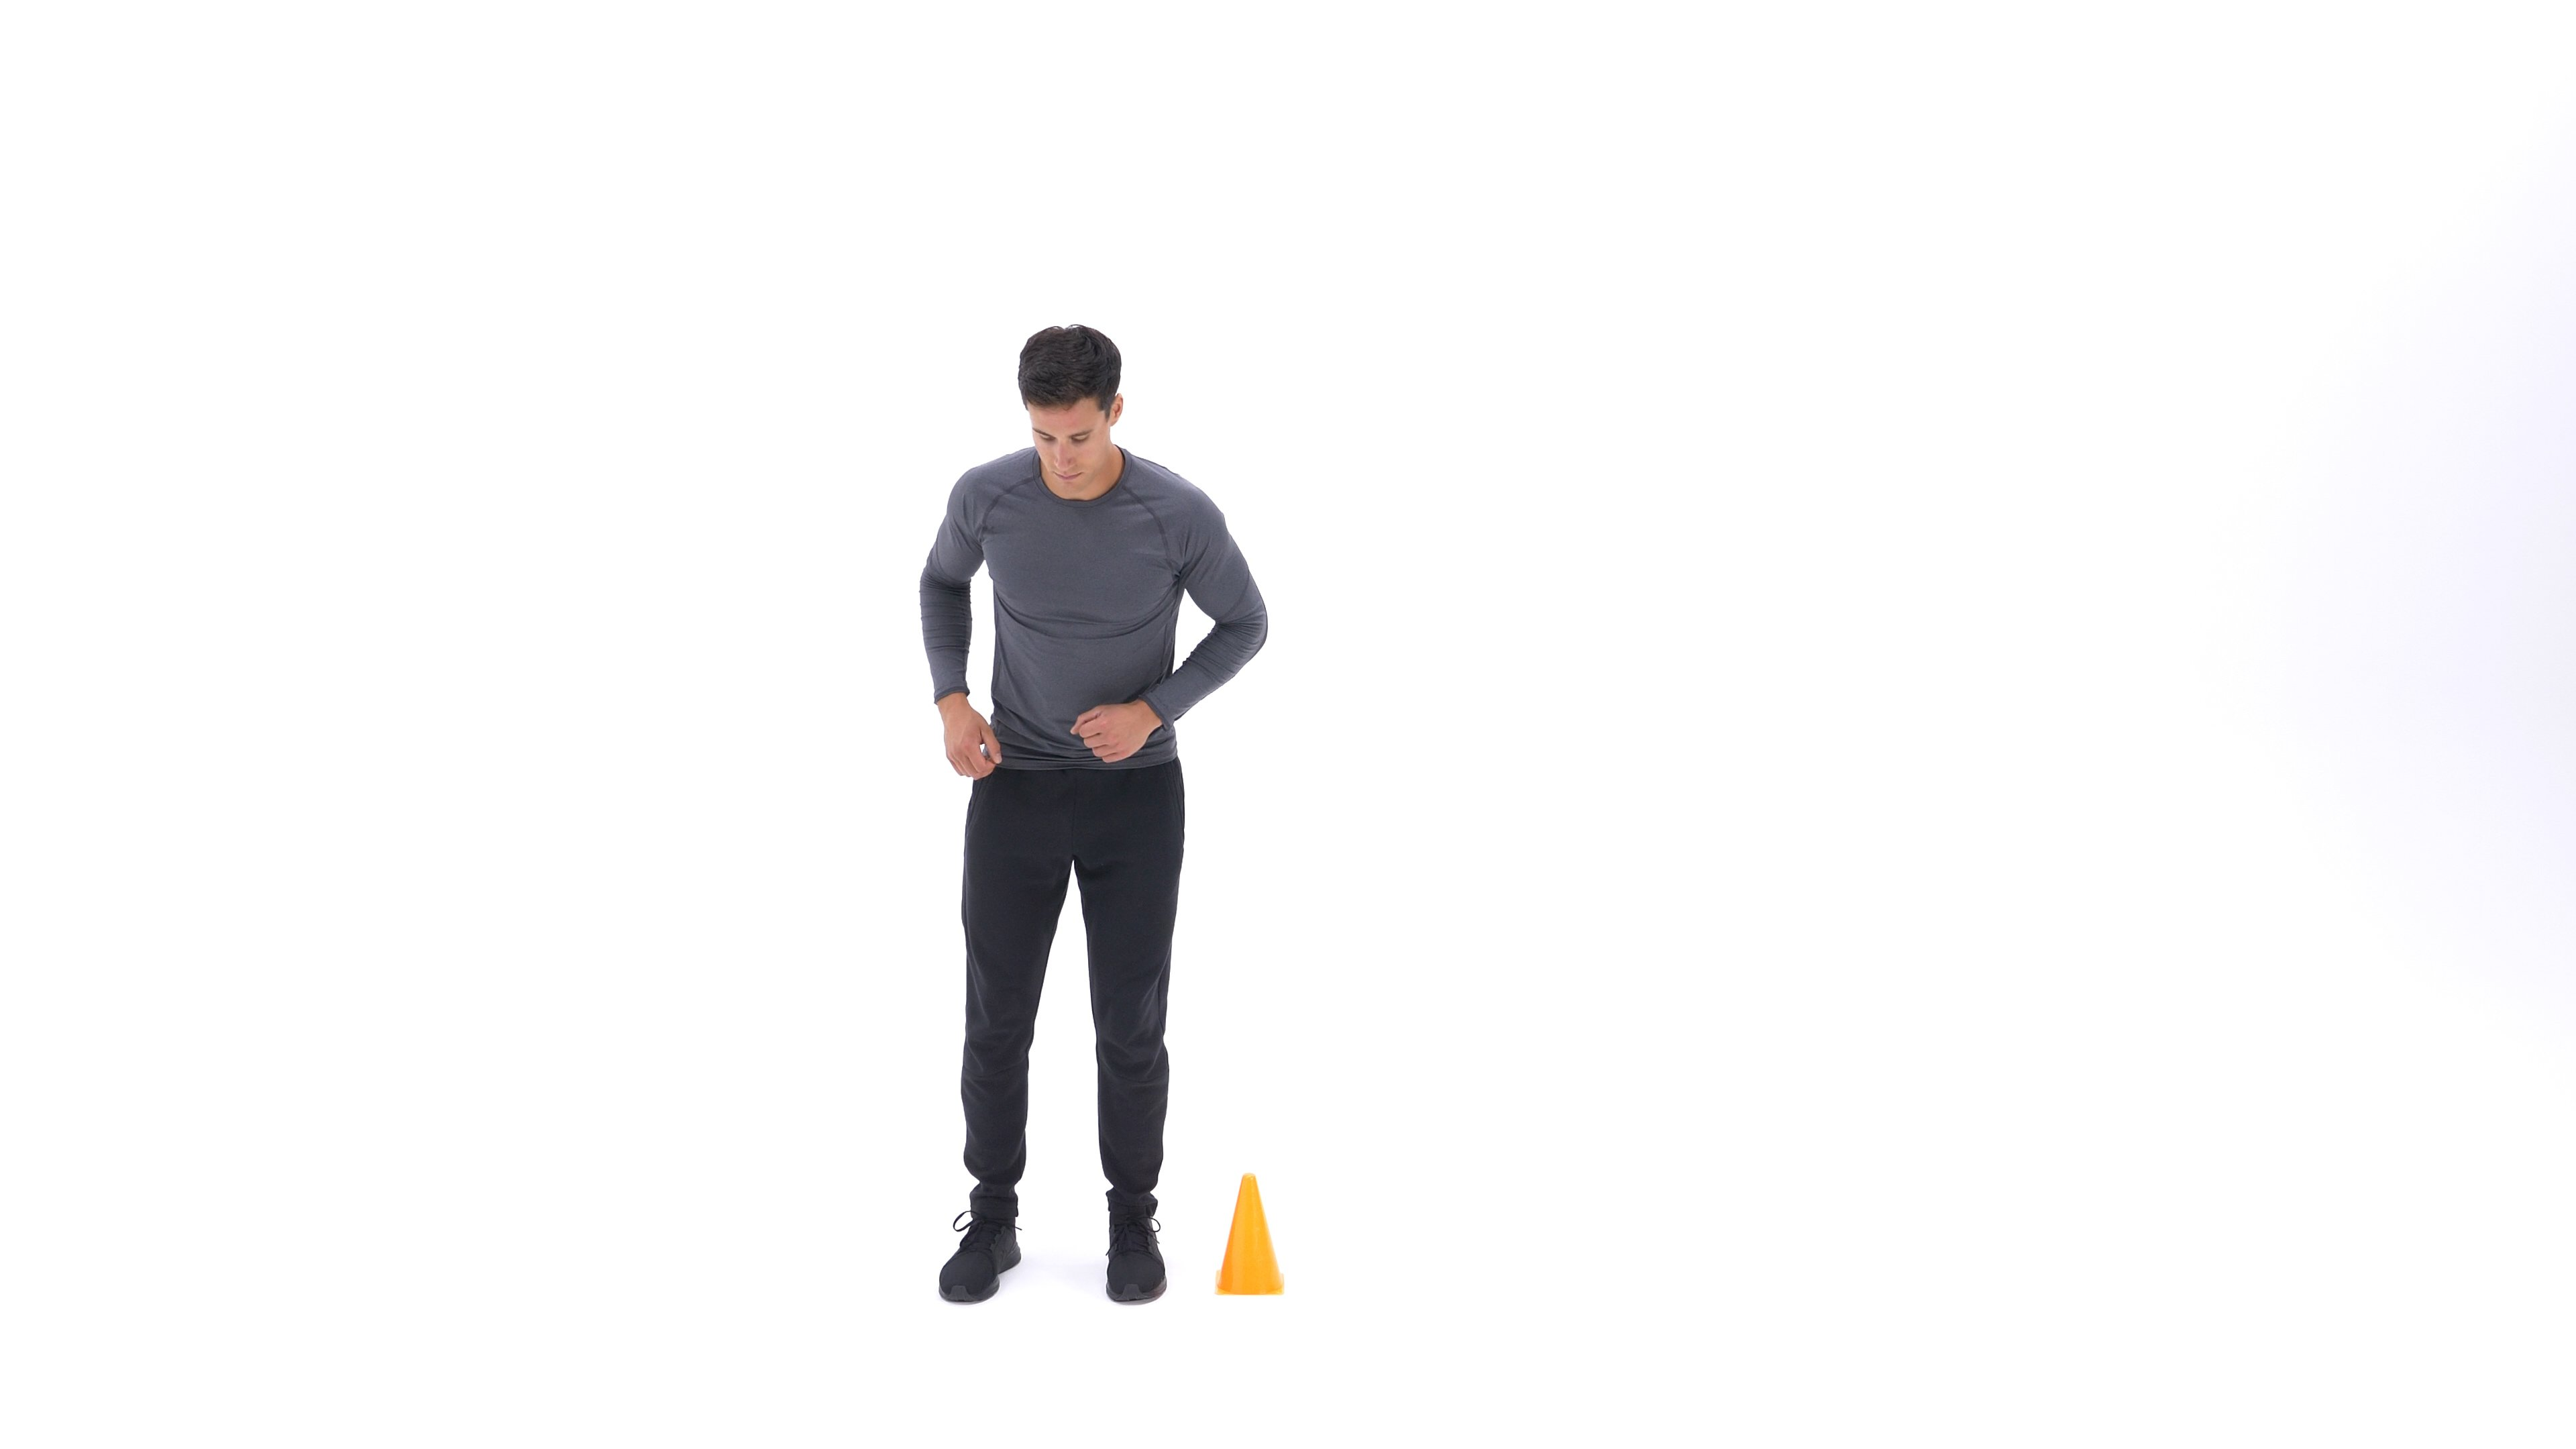 Lateral cone hop image